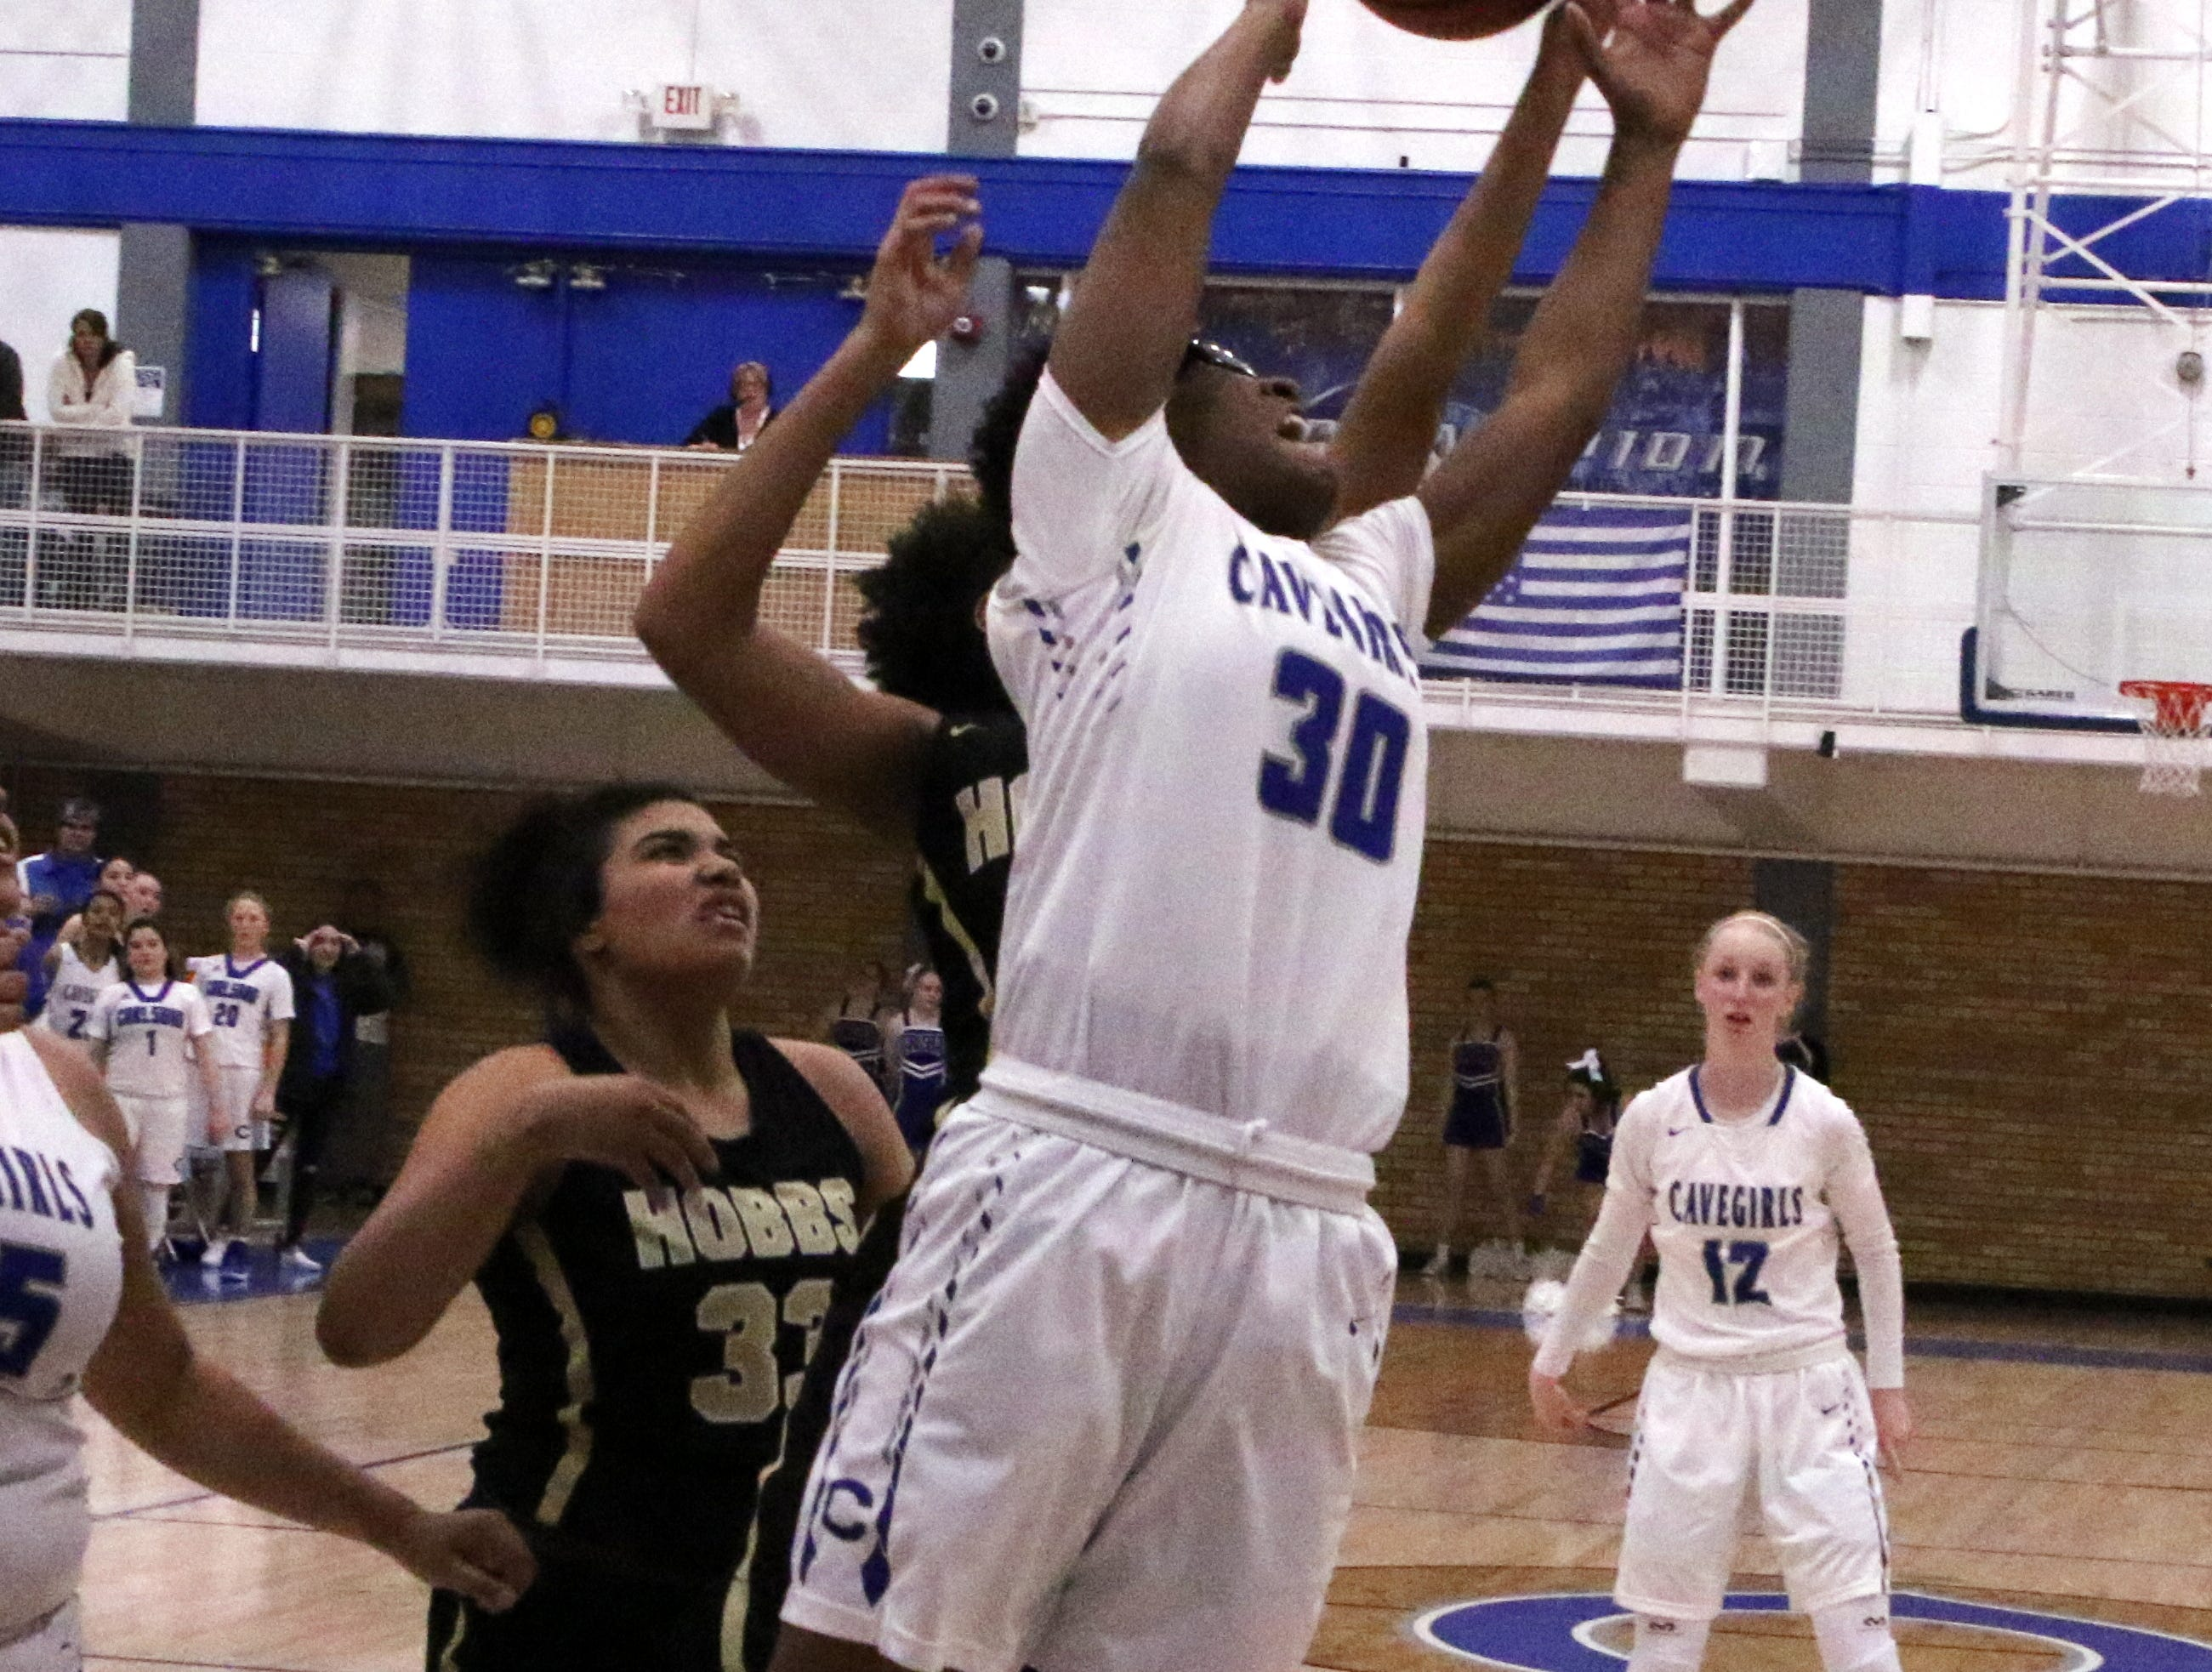 Carlsbad's Dayshaun Moore (30) collects one of her six rebounds during Friday's game against Hobbs.